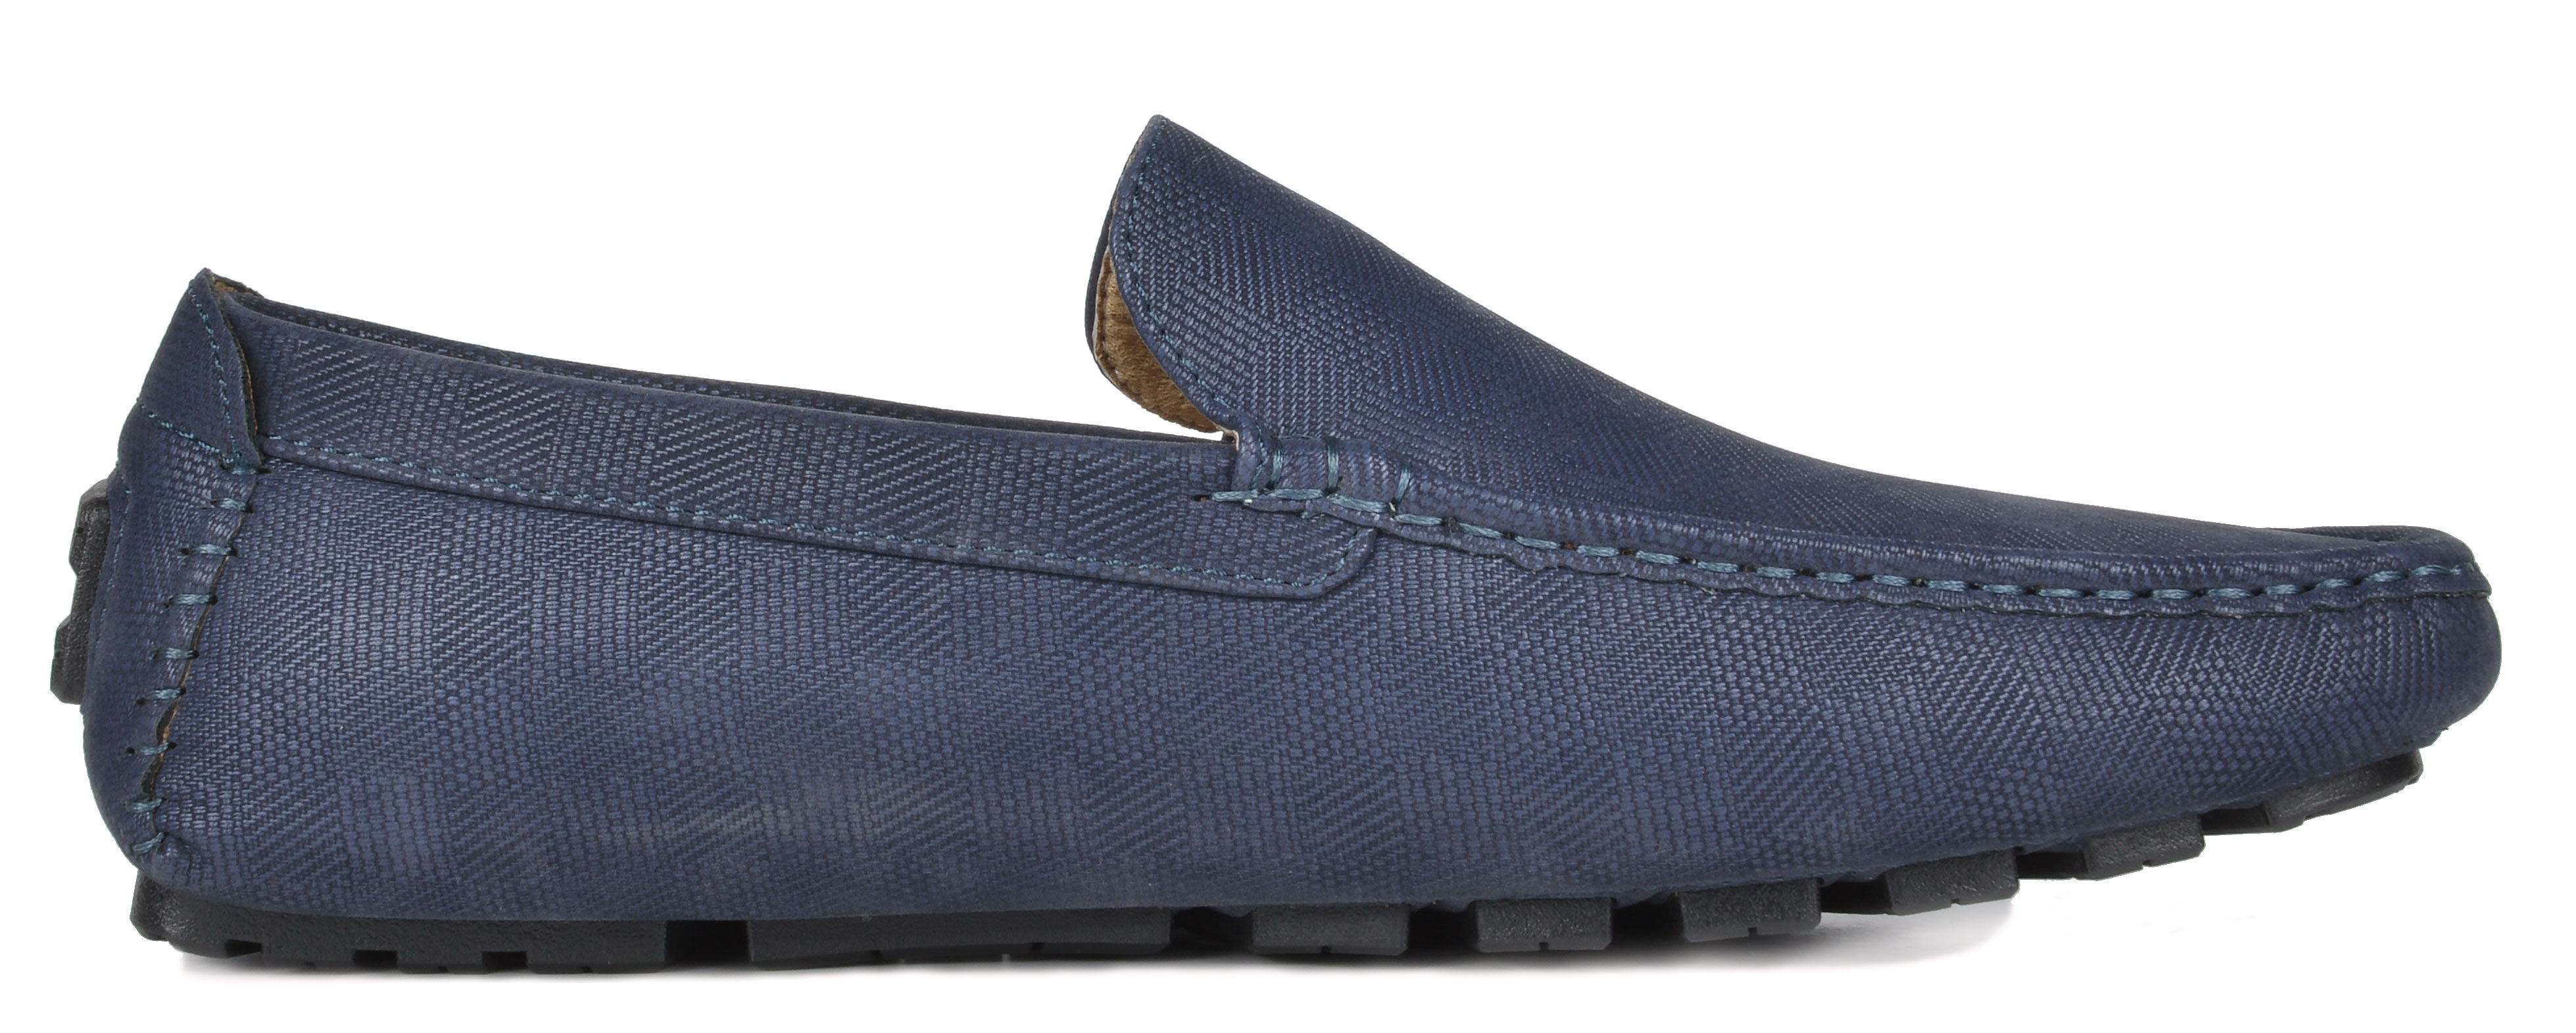 Bruno-Marc-Men-039-s-New-Classic-Fashion-Slip-on-Driving-Casual-Loafers-Boat-Shoes thumbnail 134